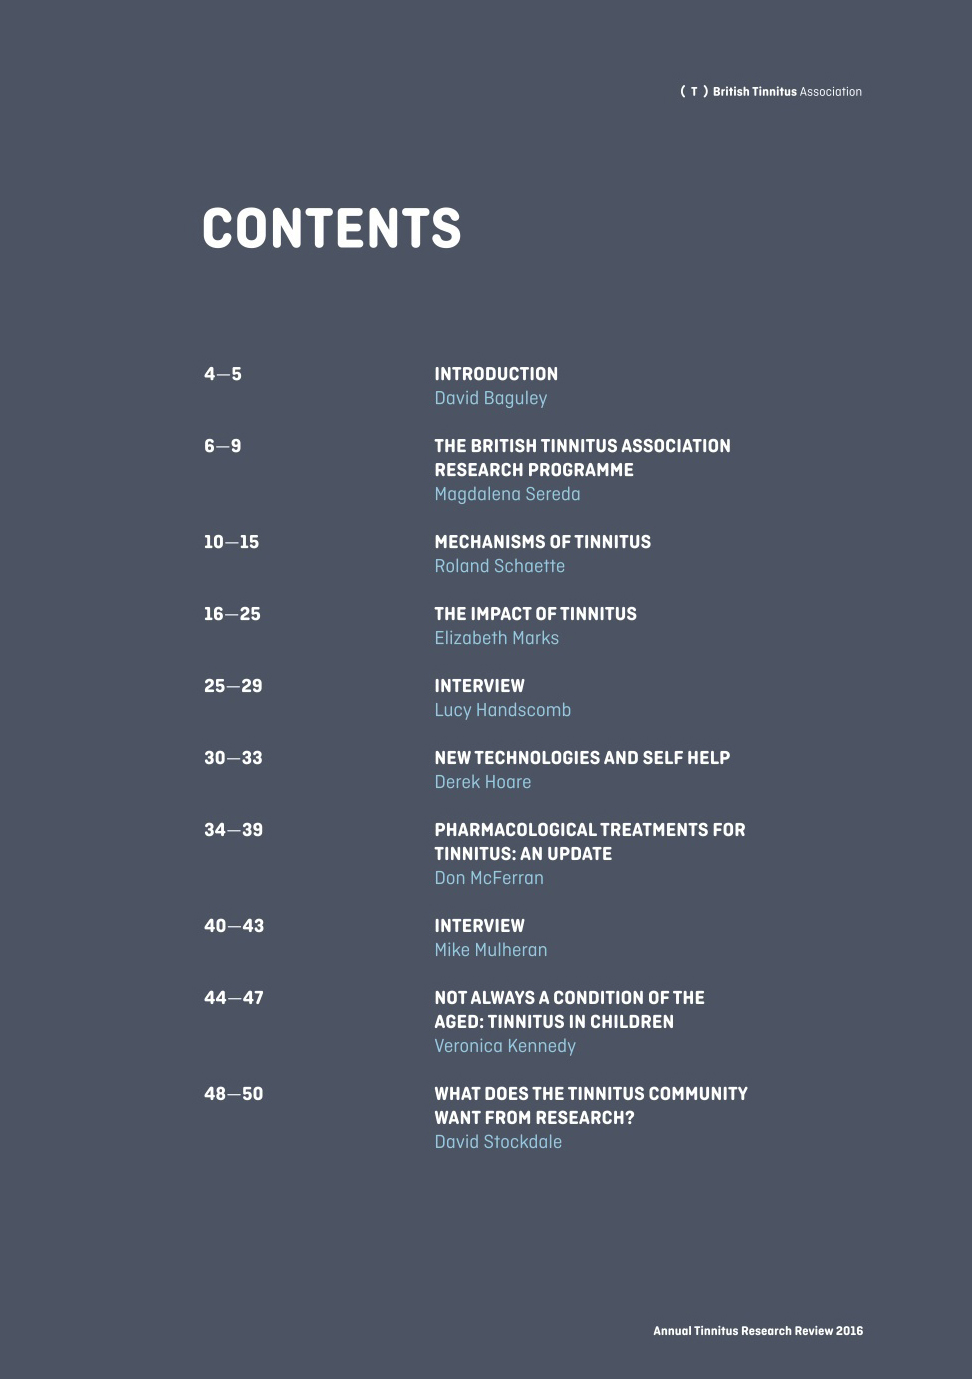 Contents page of Annual Tinnitus Research Review